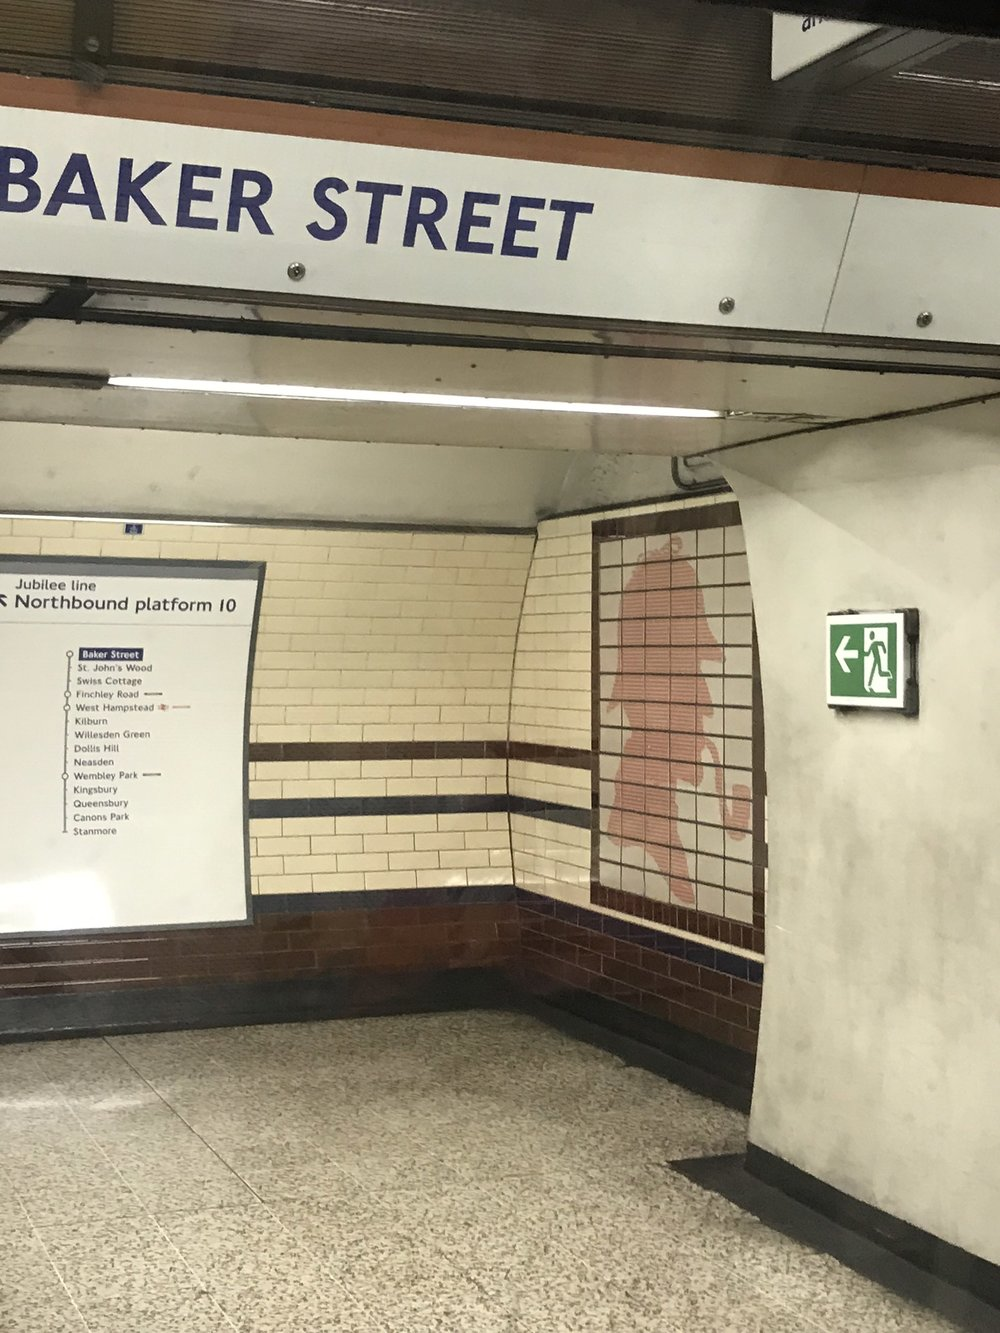 Baker Street Station - As seen in